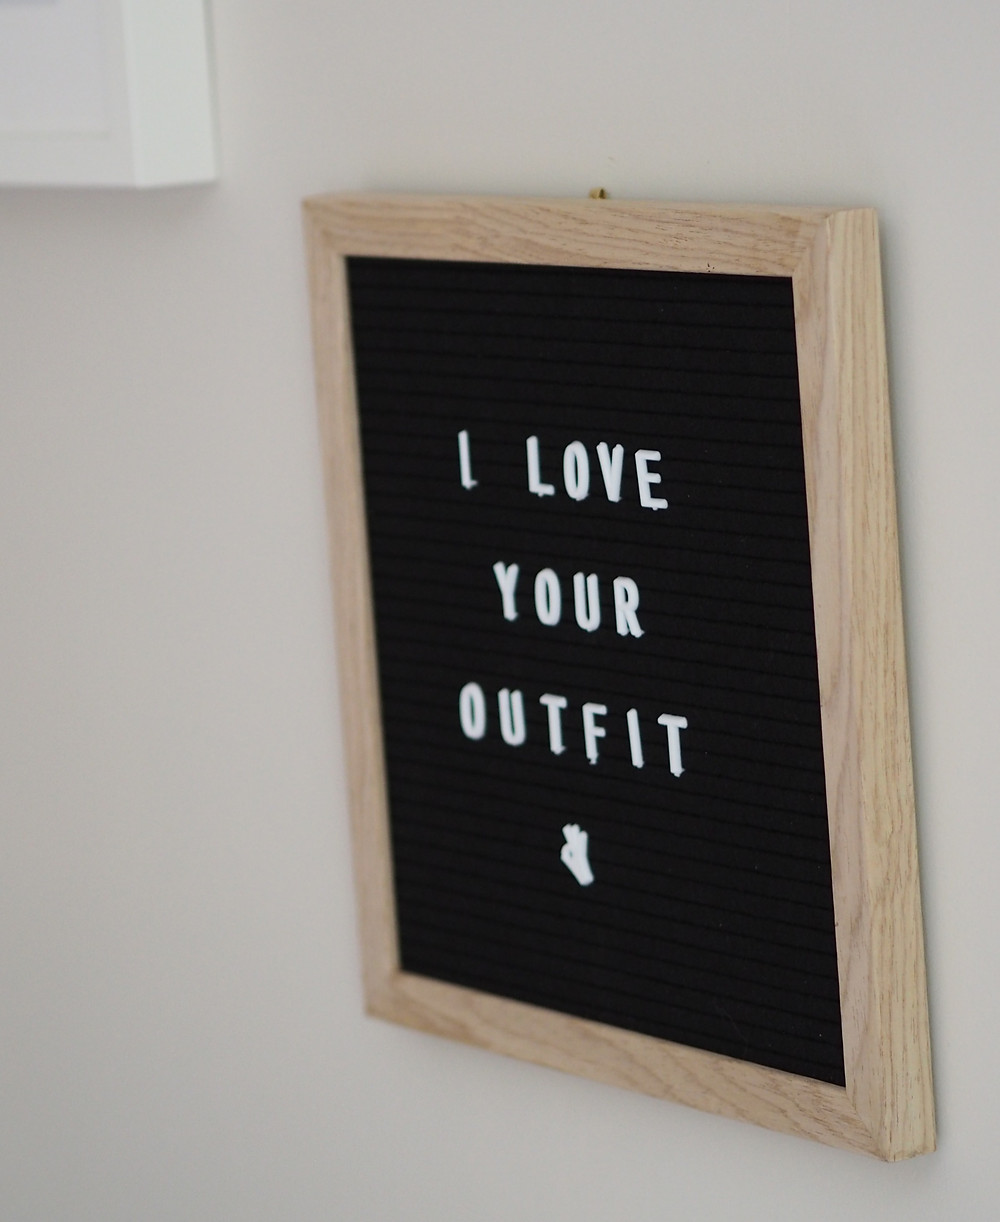 Wooden peg board saying 'I love your outfit' in the Wild Home Online office